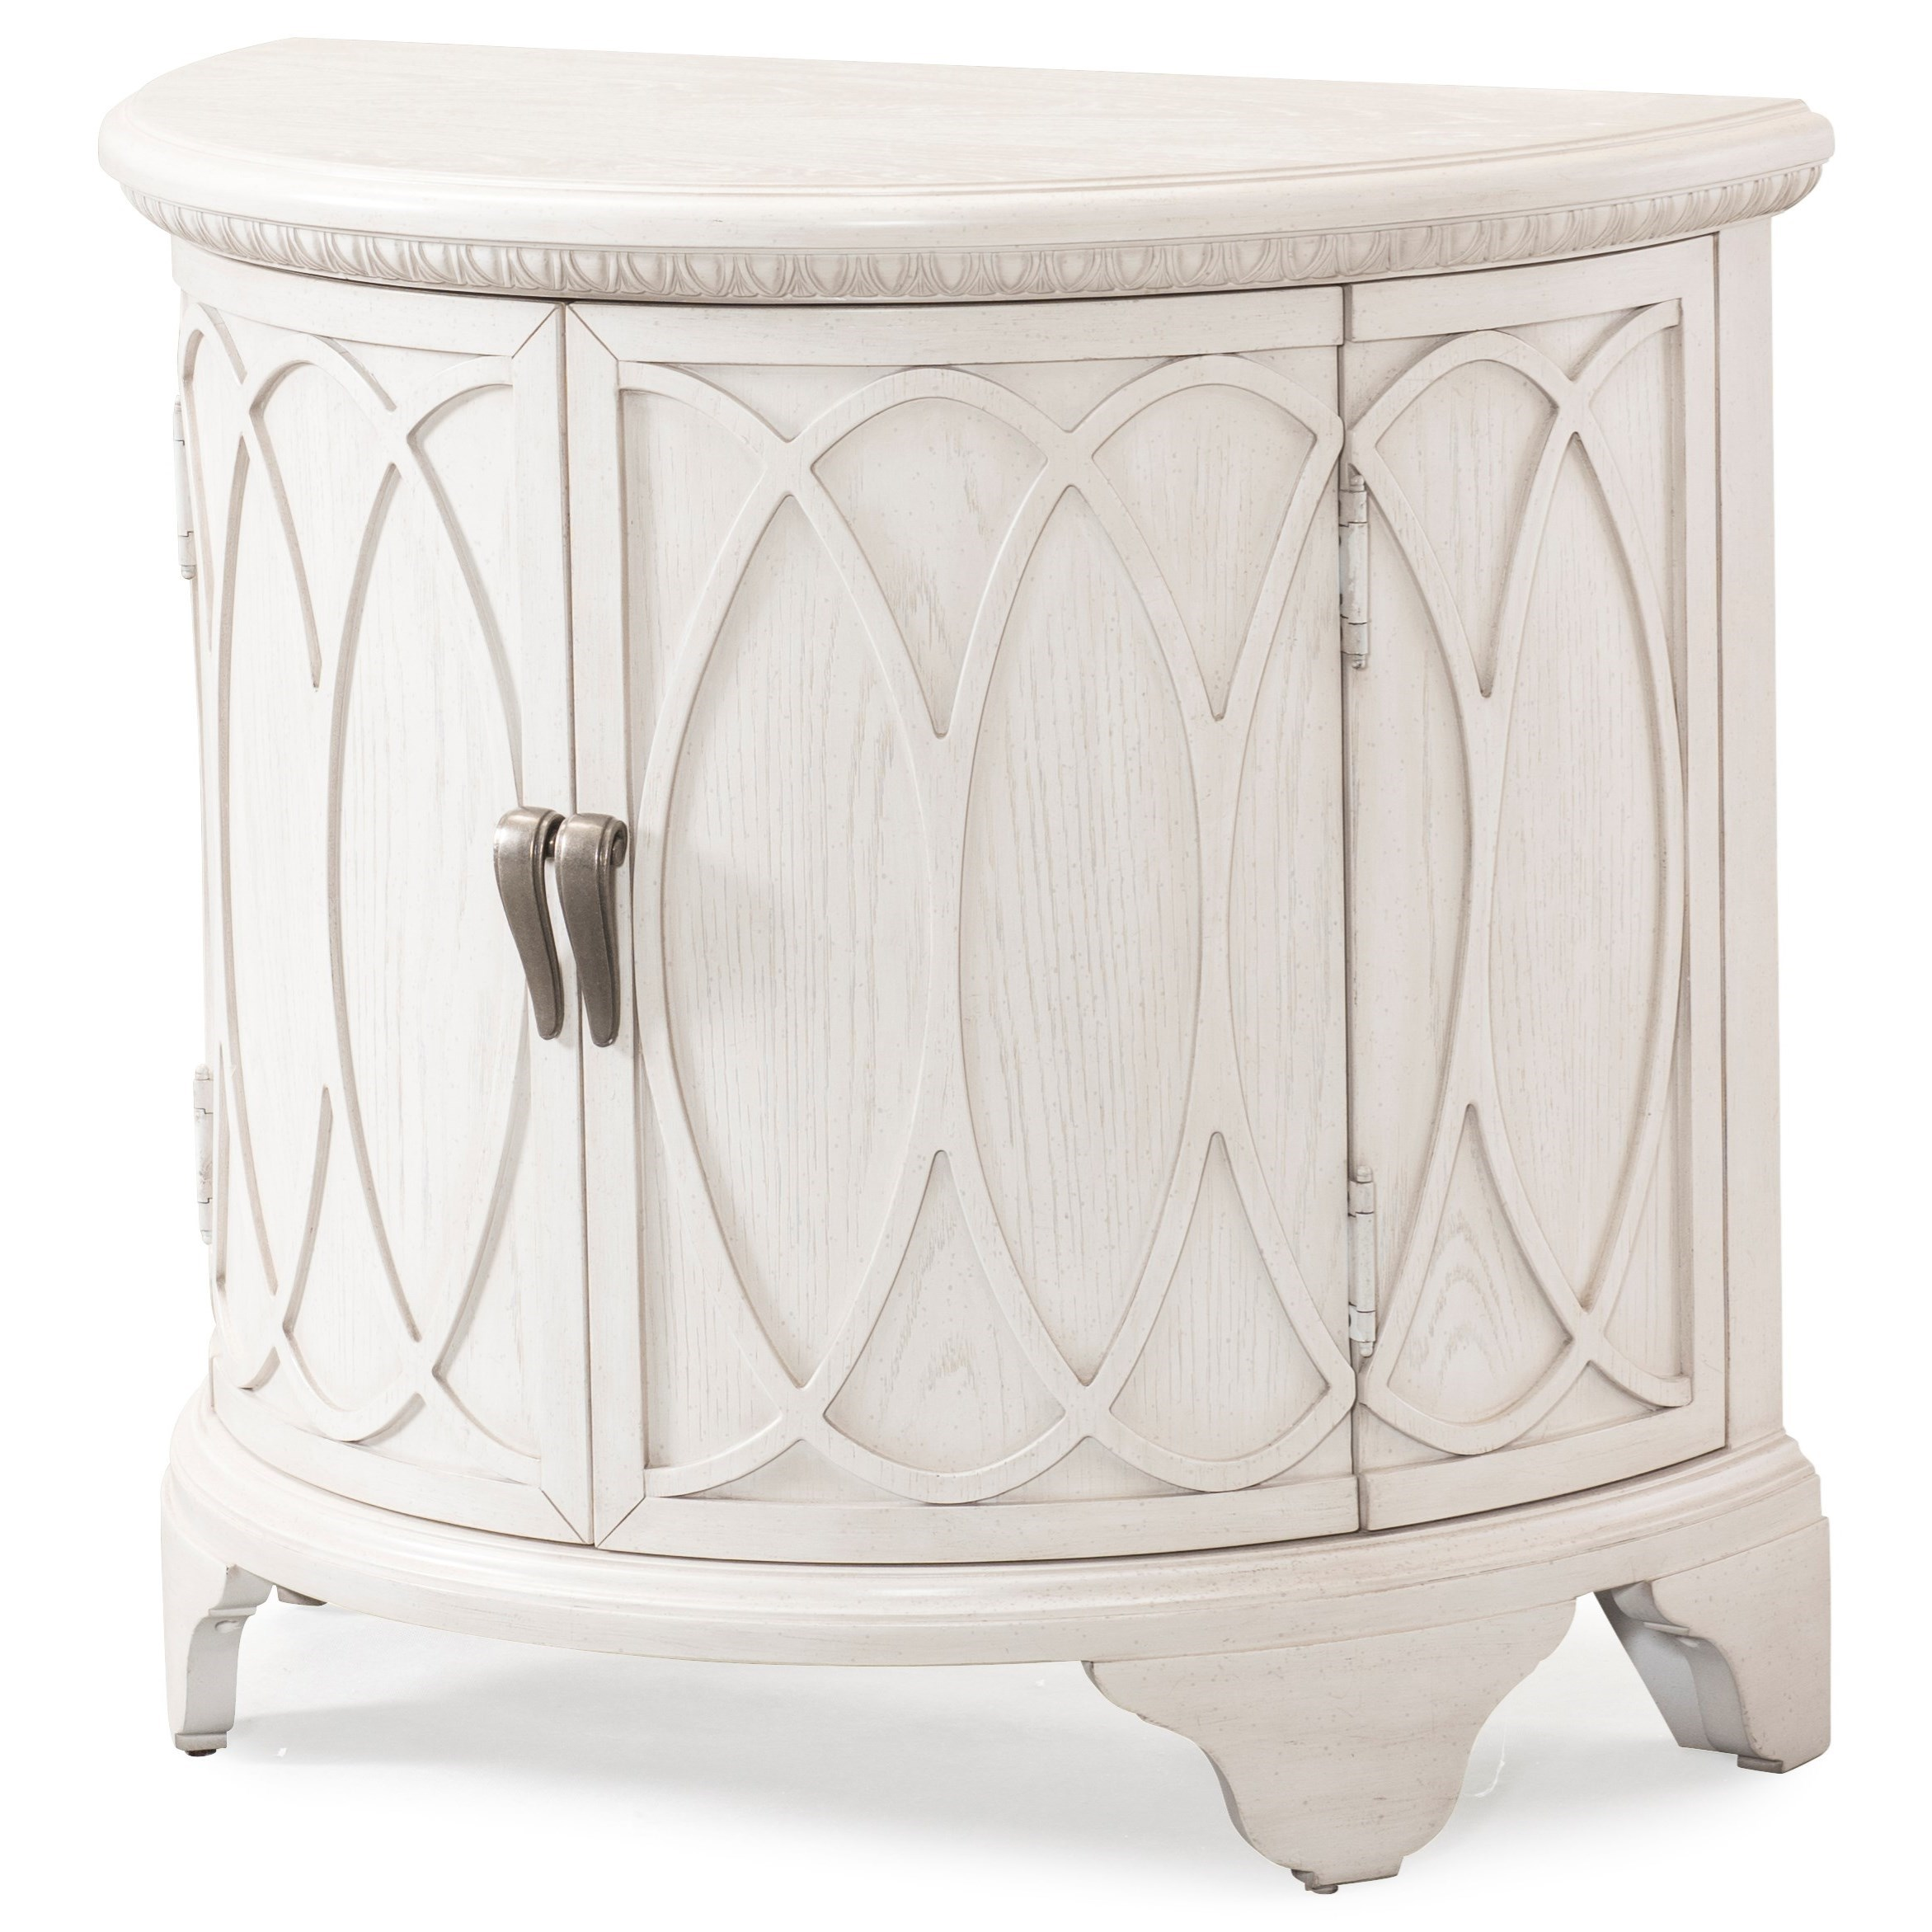 Jasper County Julianne Accent Chest by Trisha Yearwood Home Collection by Klaussner at Miller Home